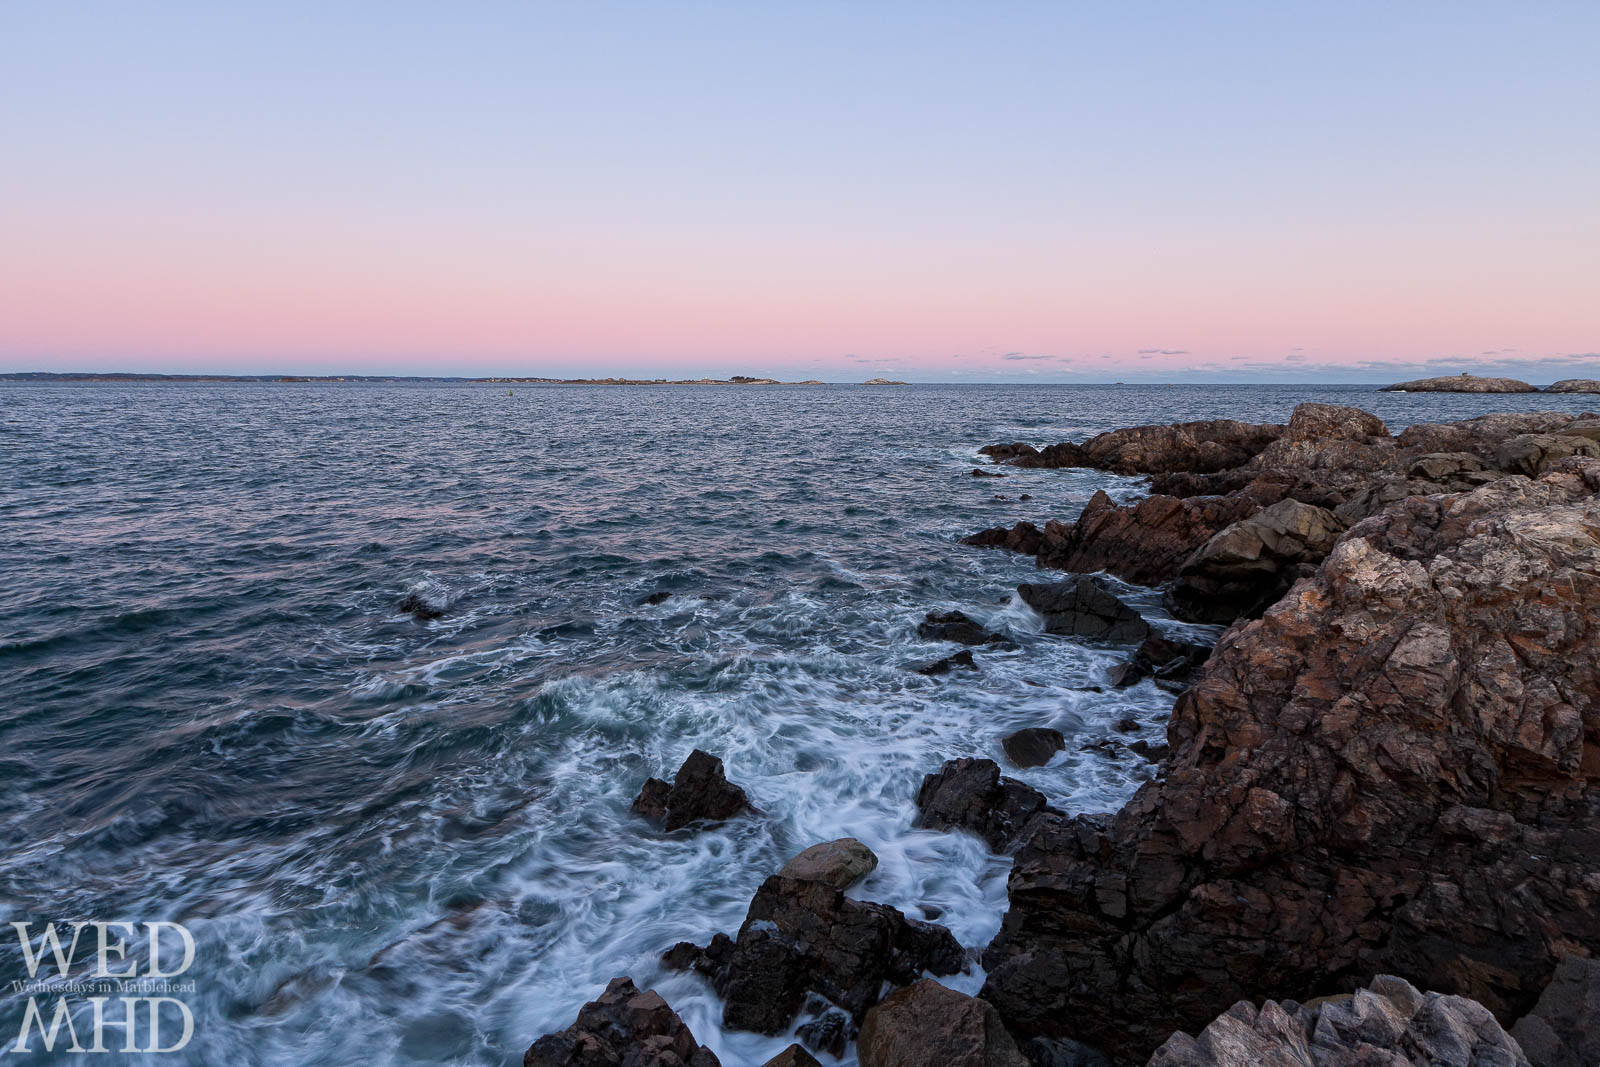 The ocean water churns along the rocky shore of Chandler Hovey Park at sunset